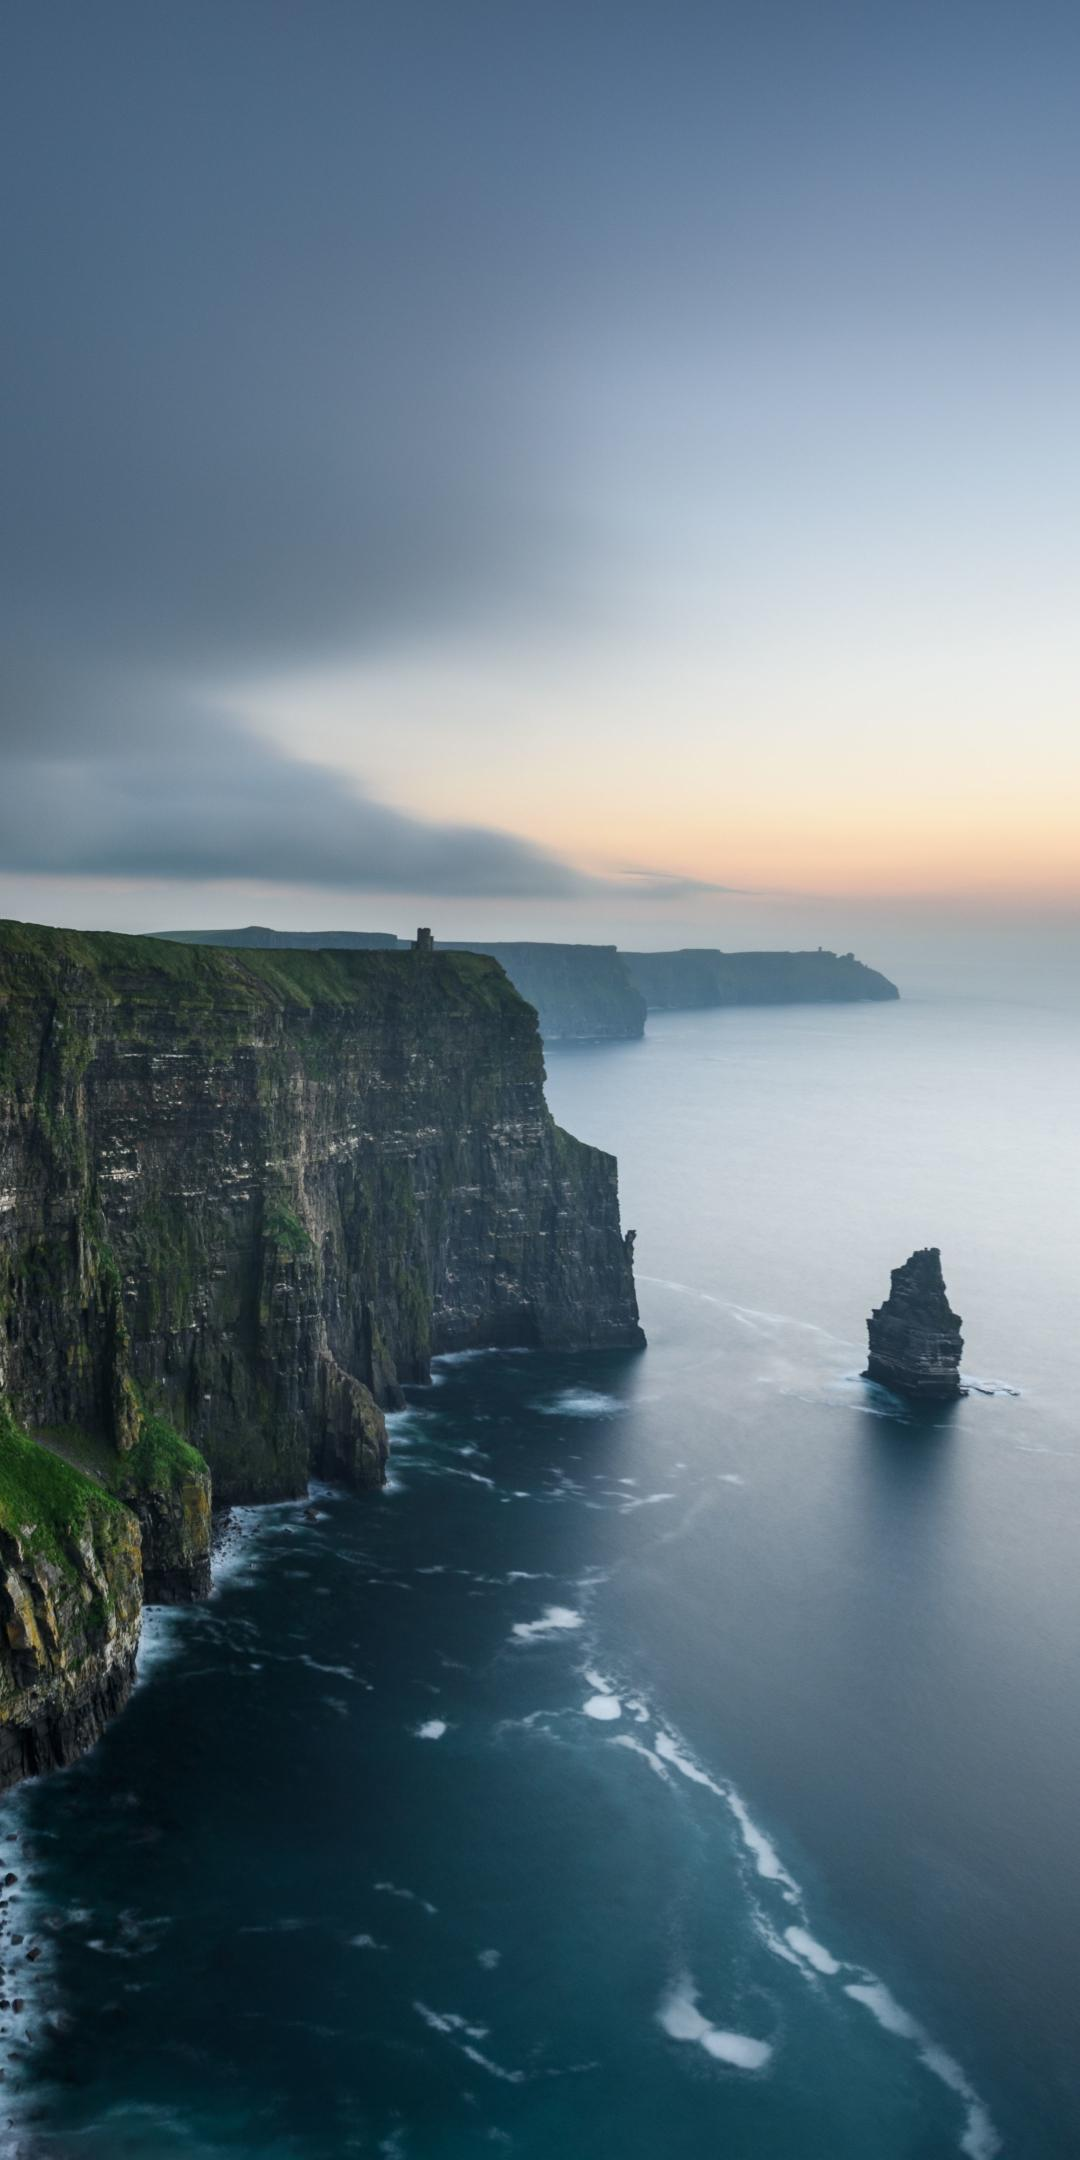 Earth/Cliffs Of Moher (1080x2160) Wallpaper ID: 739109 - Mobile Abyss